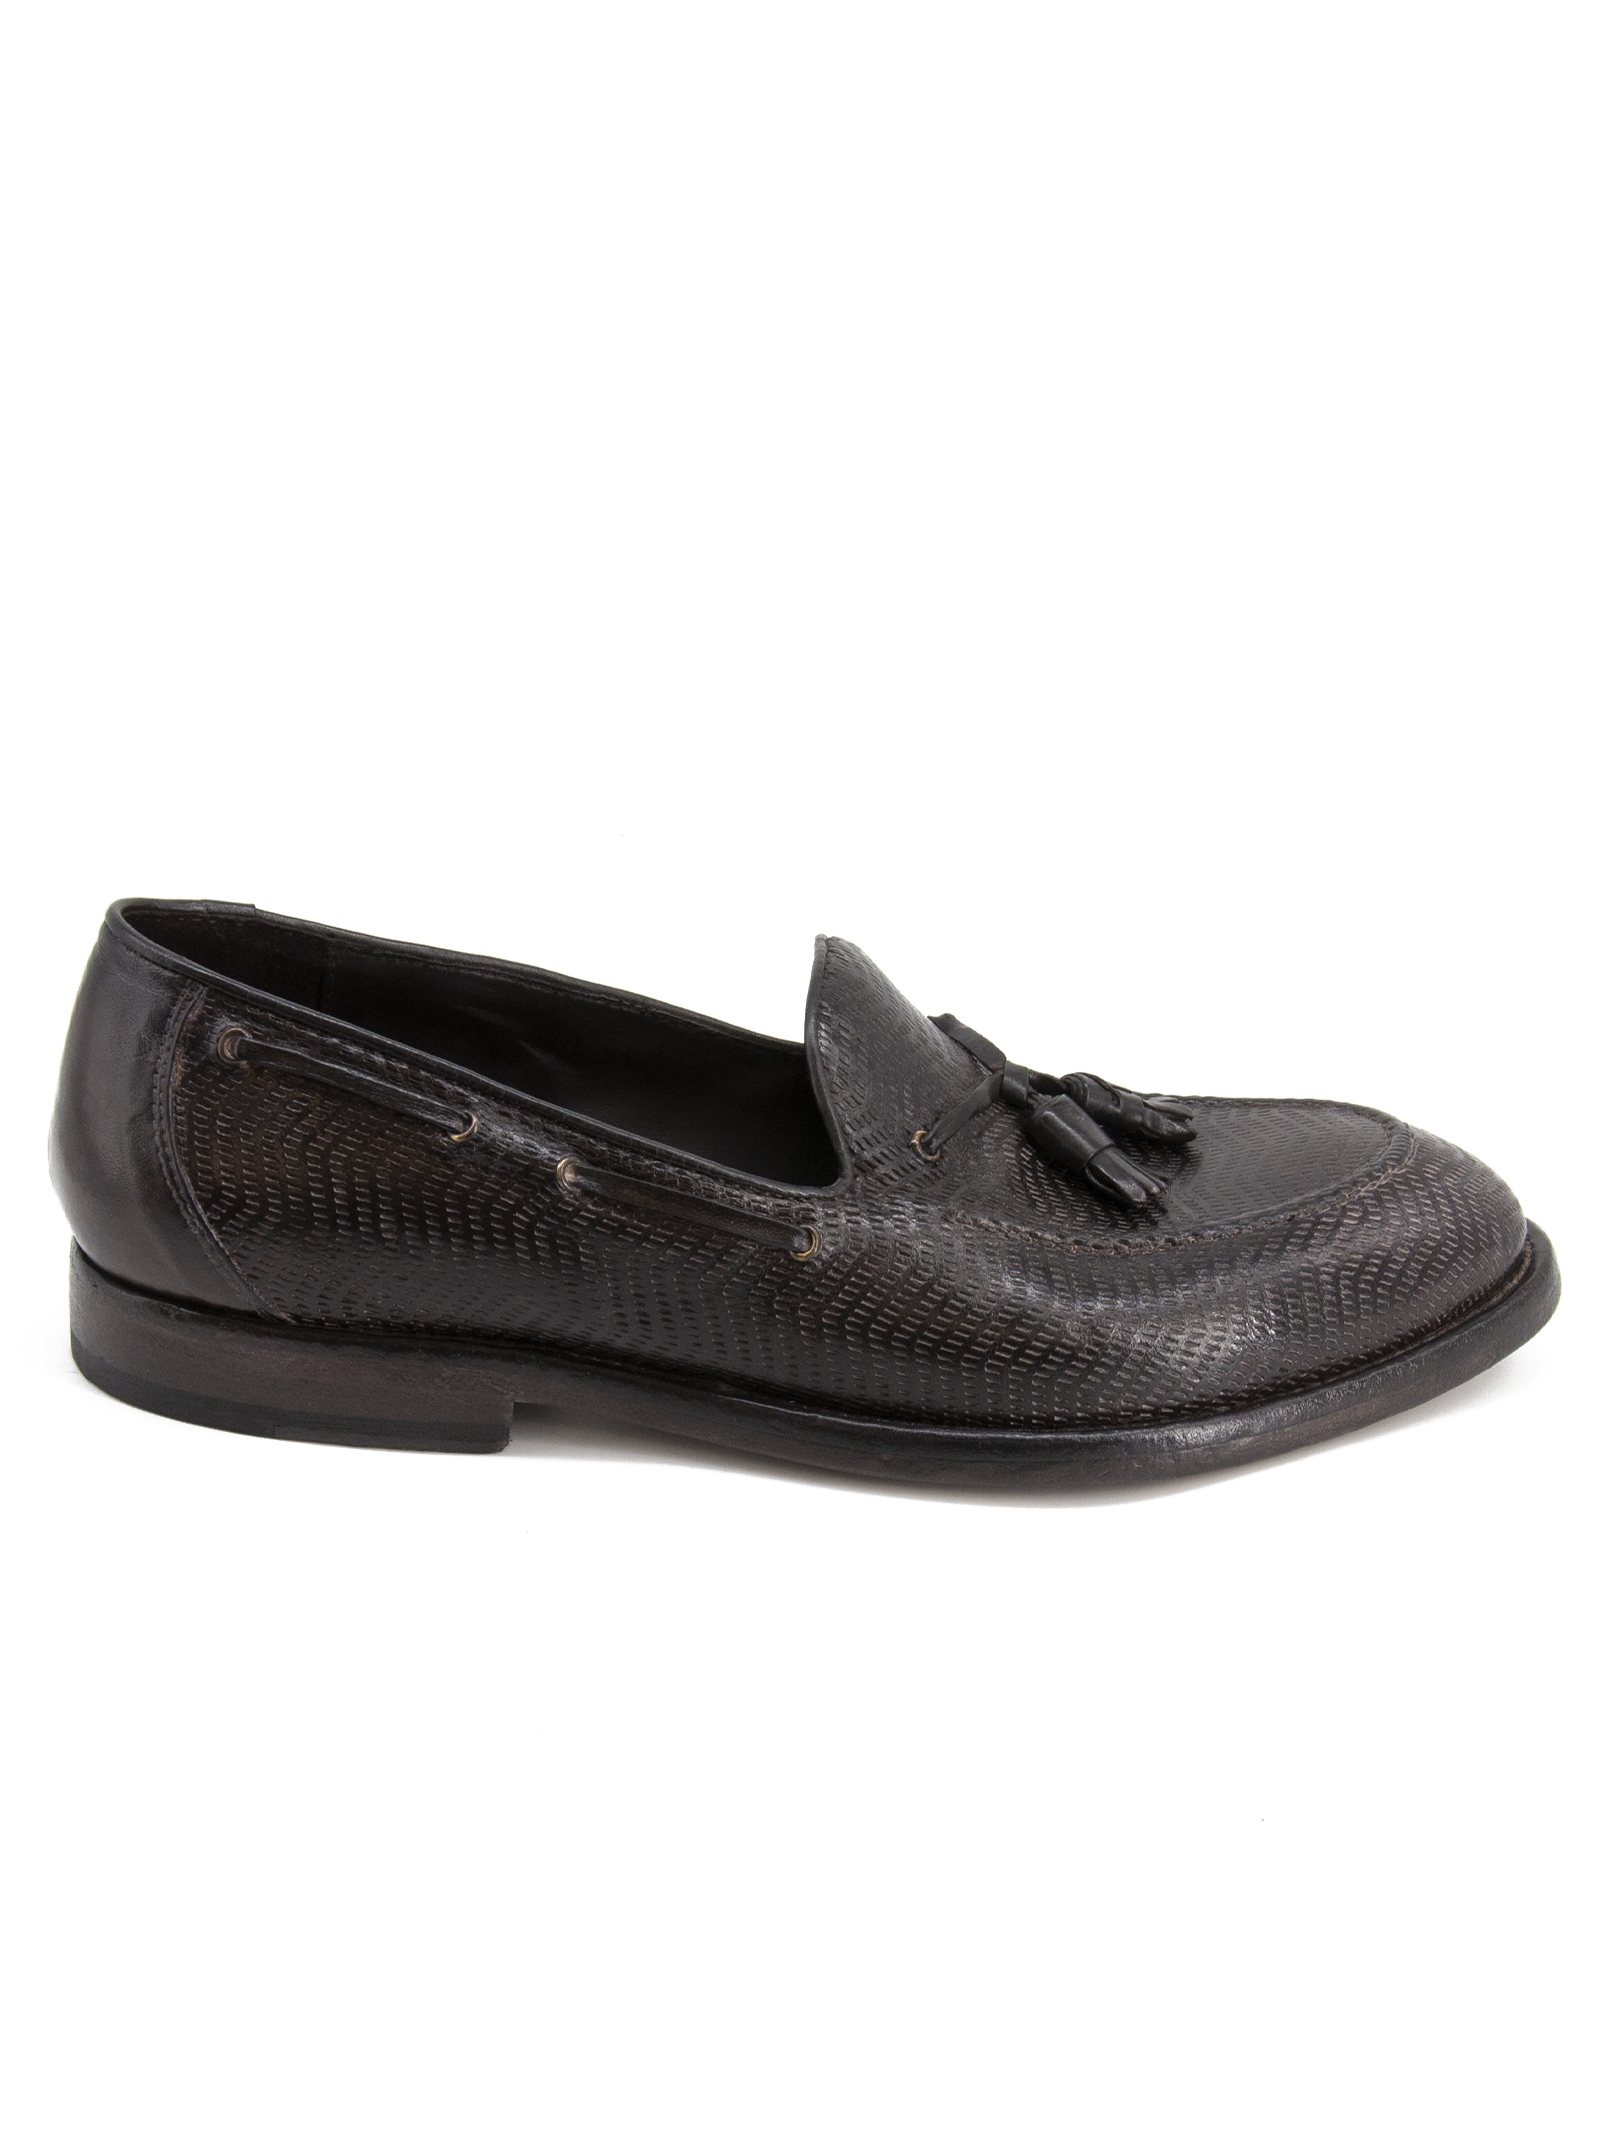 tassel laserato washed SHOTO | 921336138 | 9691moro